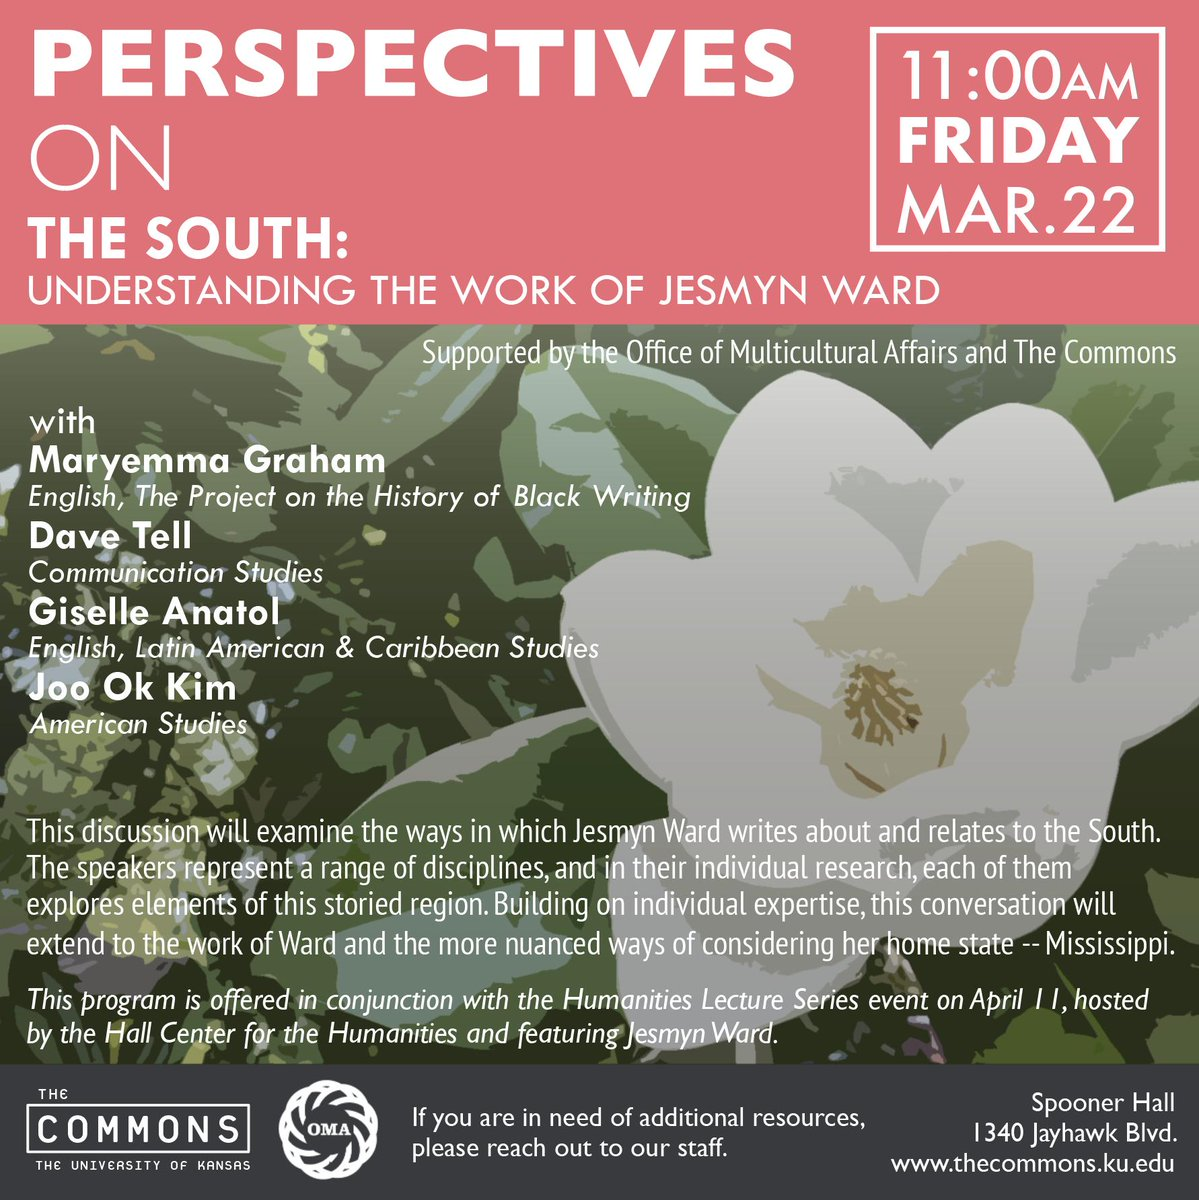 Excited to announce this event--a discussion on The South and the work of Jesmyn Ward! 11am, Mar. 22. | Featuring Maryemma Graham, Dave Tell, Giselle Anatol, Joo Ok Kim, and presented in conjunction with the @KUHallCenter April 11 talk by Jesmyn Ward at @libertyhall!